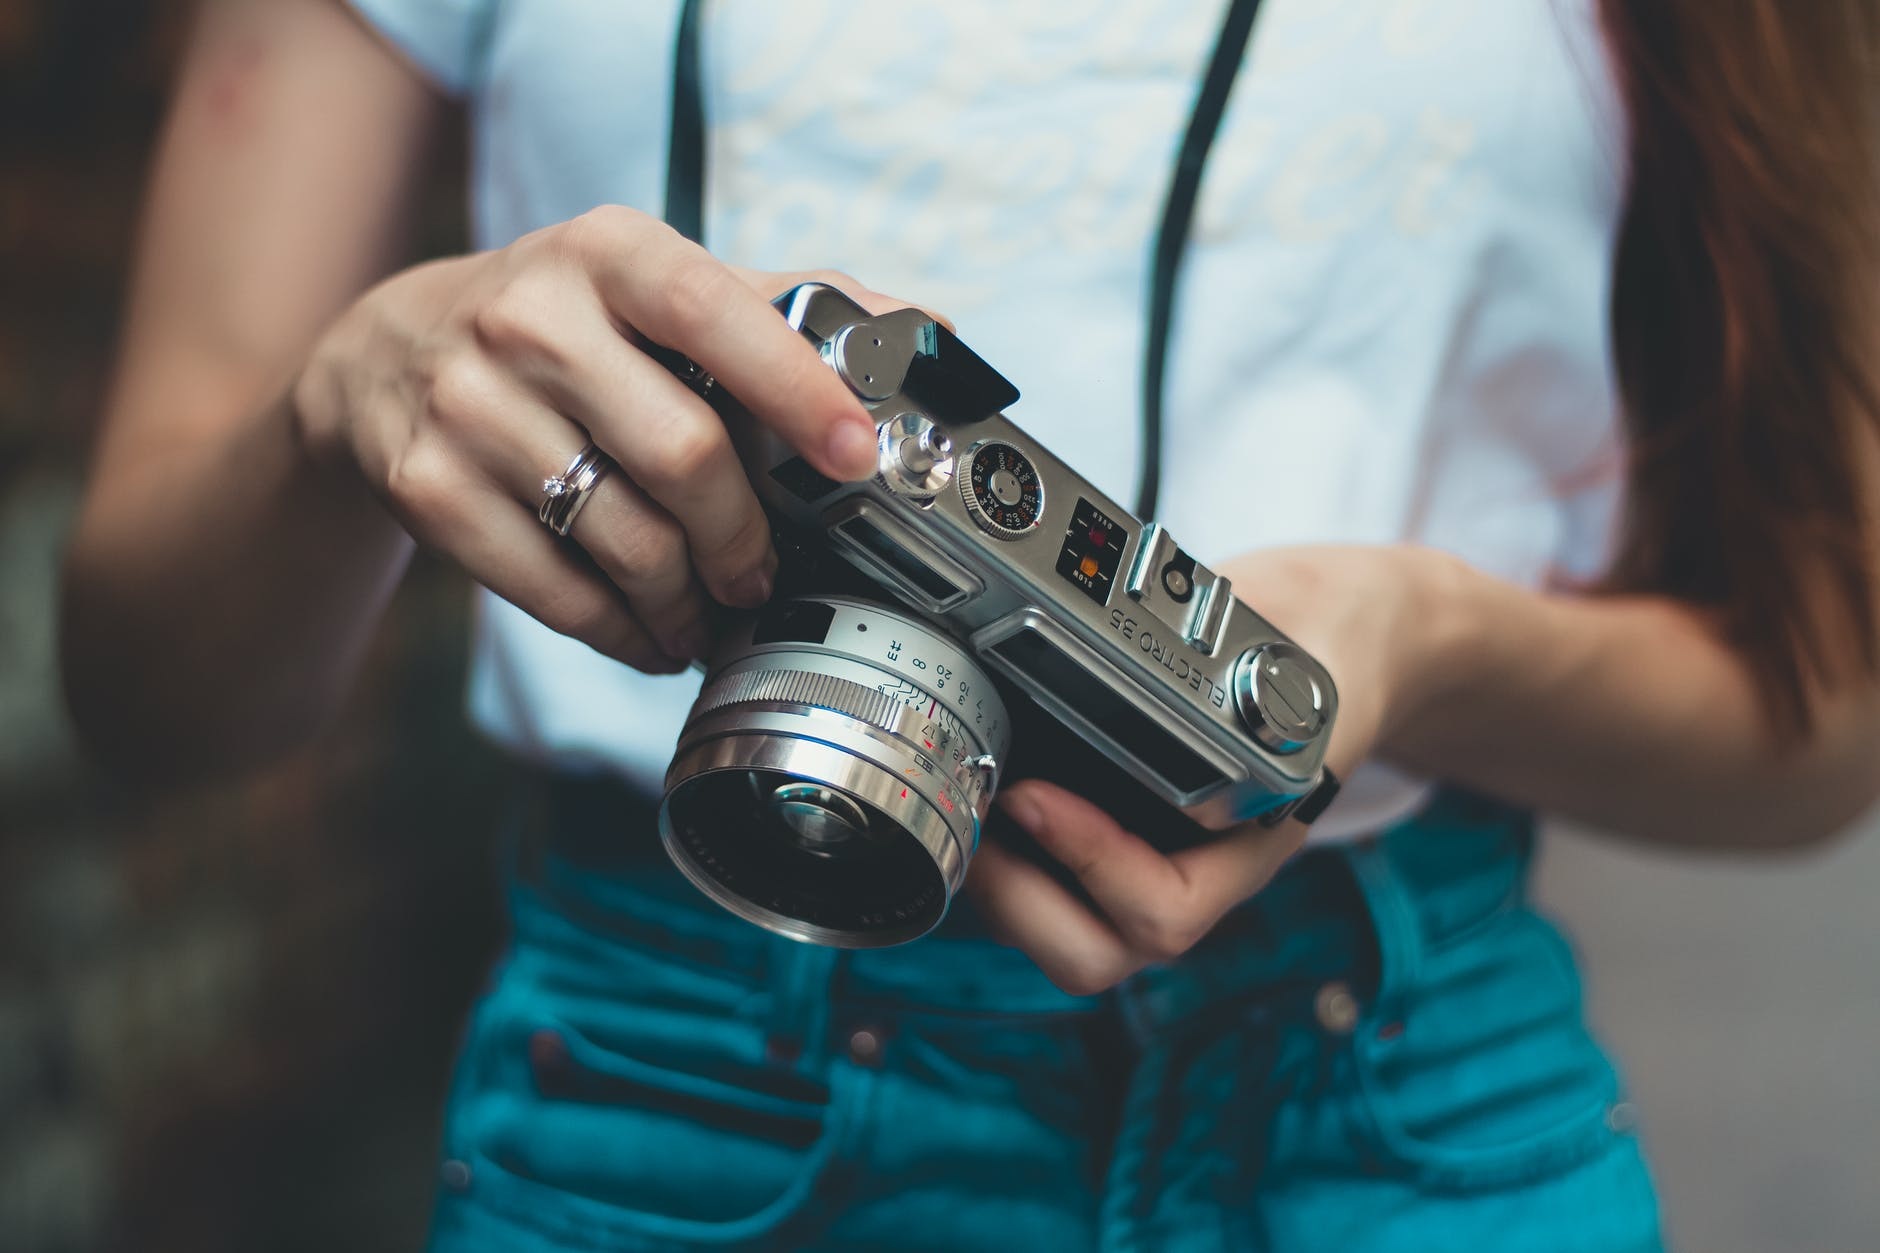 woman in white shirt holding analog camera